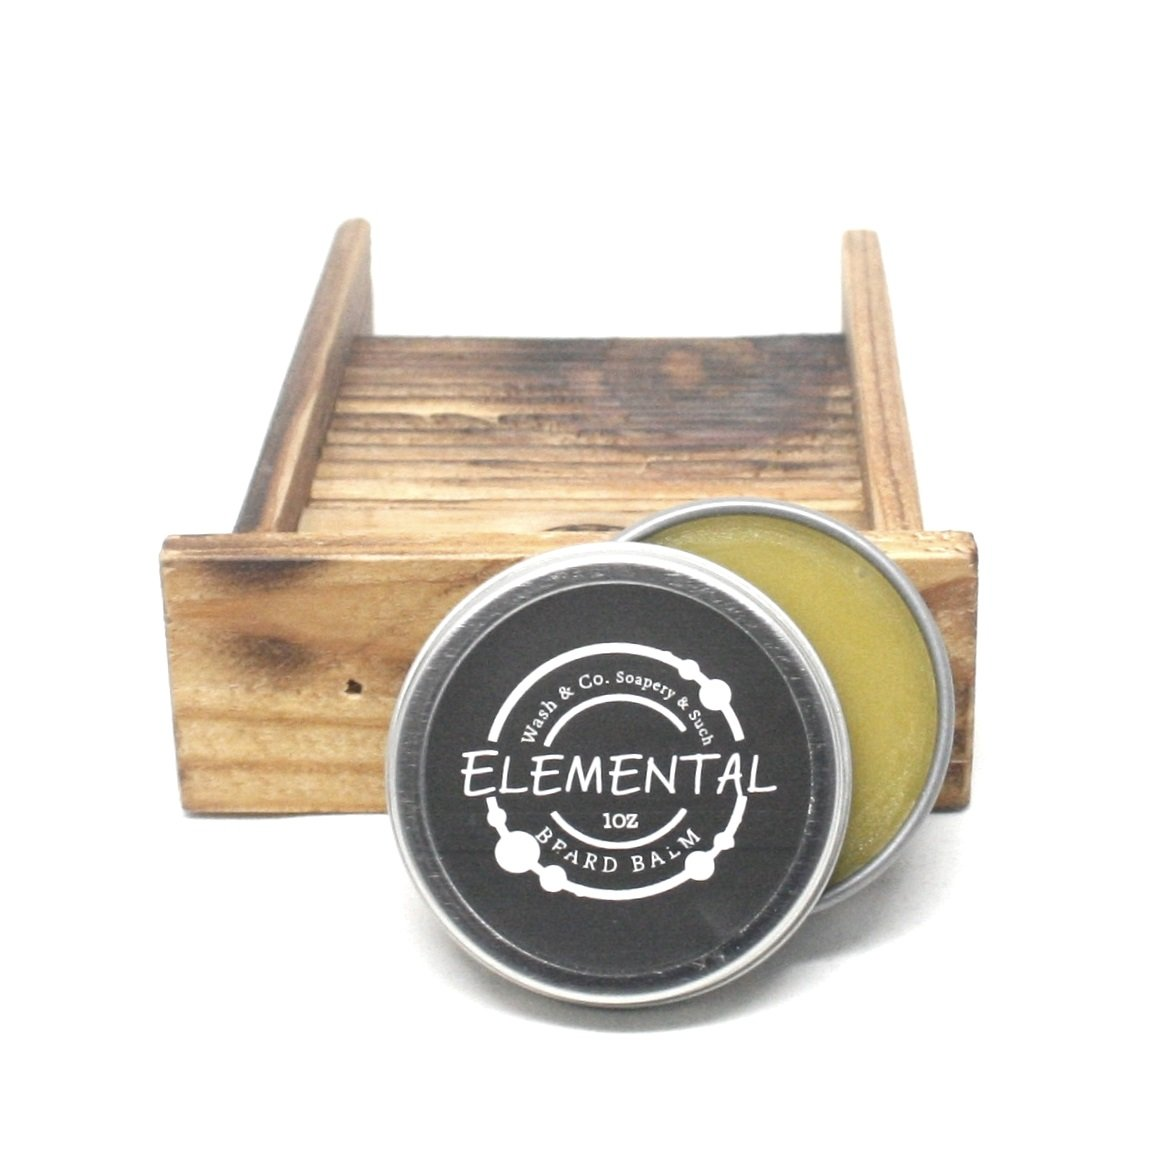 Beard Balm Elemental 1oz Tin